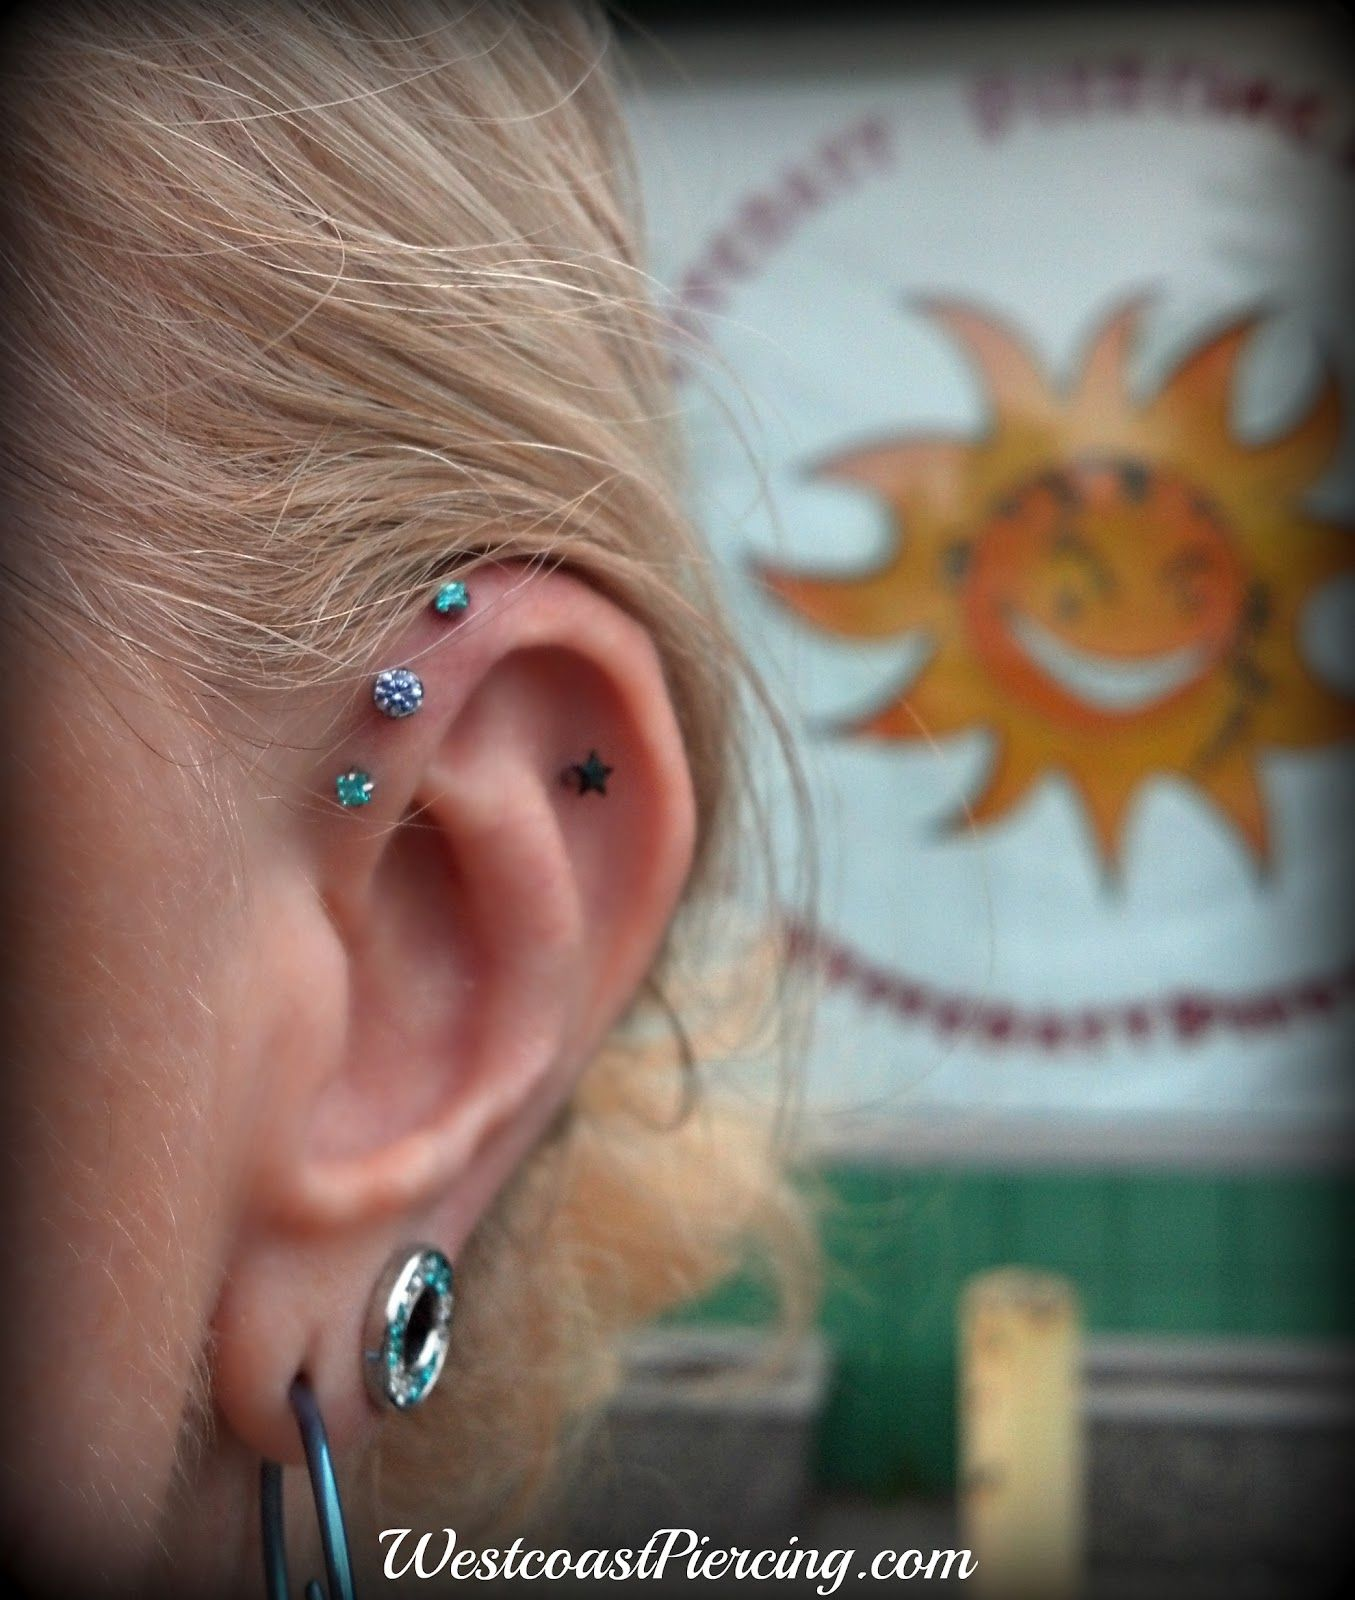 Piercing through bridge of nose  Triple Helix Piercing with  Mint Green Princess Cut jewels and a